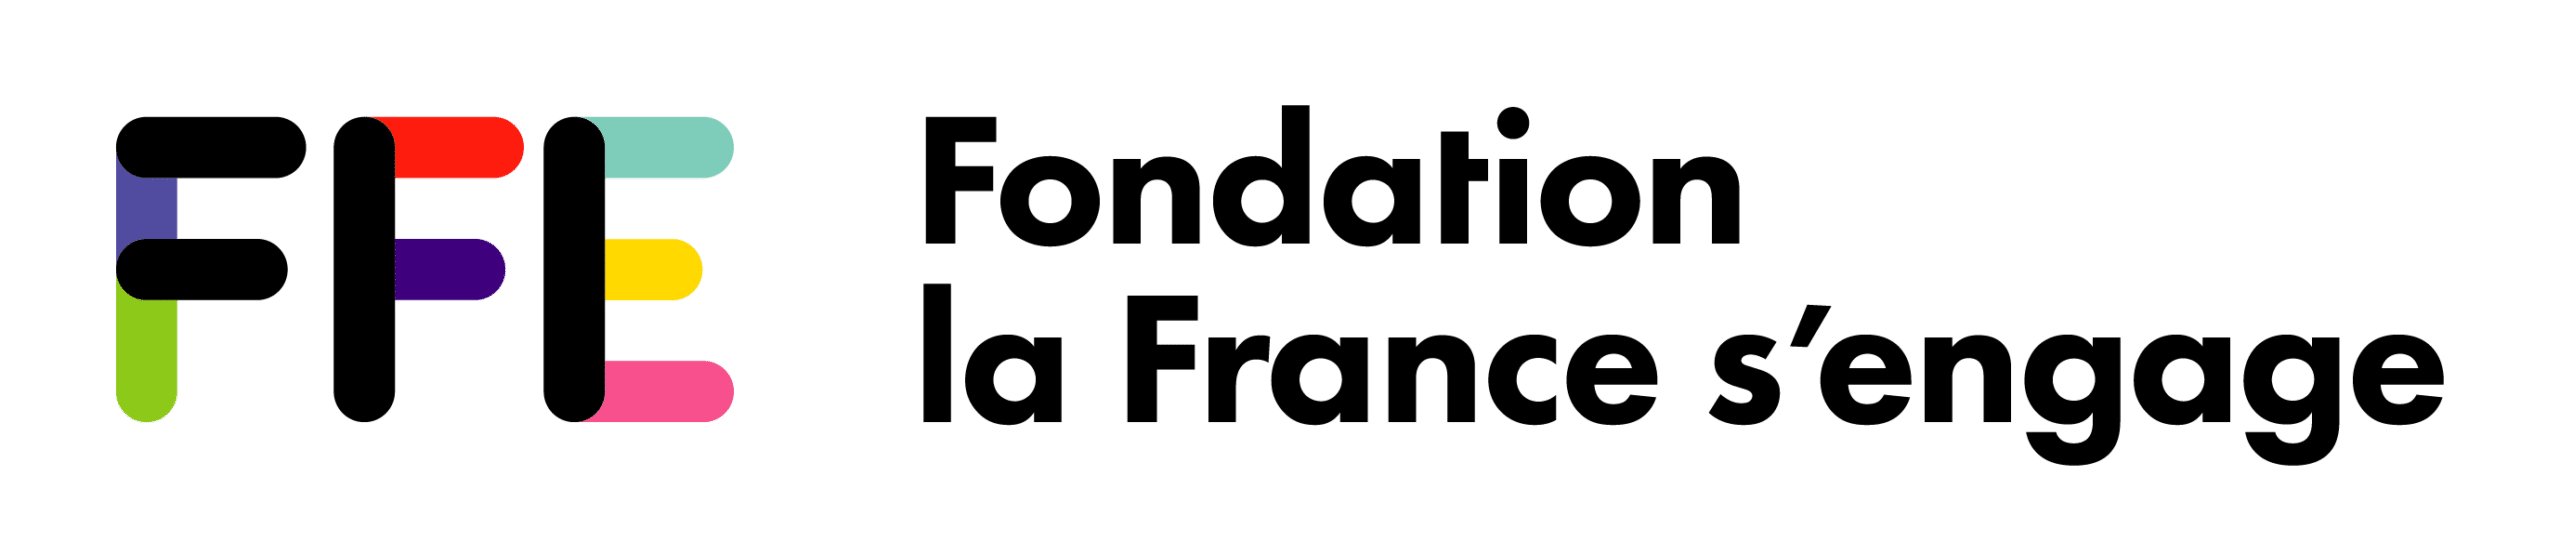 FFE – La Fondation la France s'engage